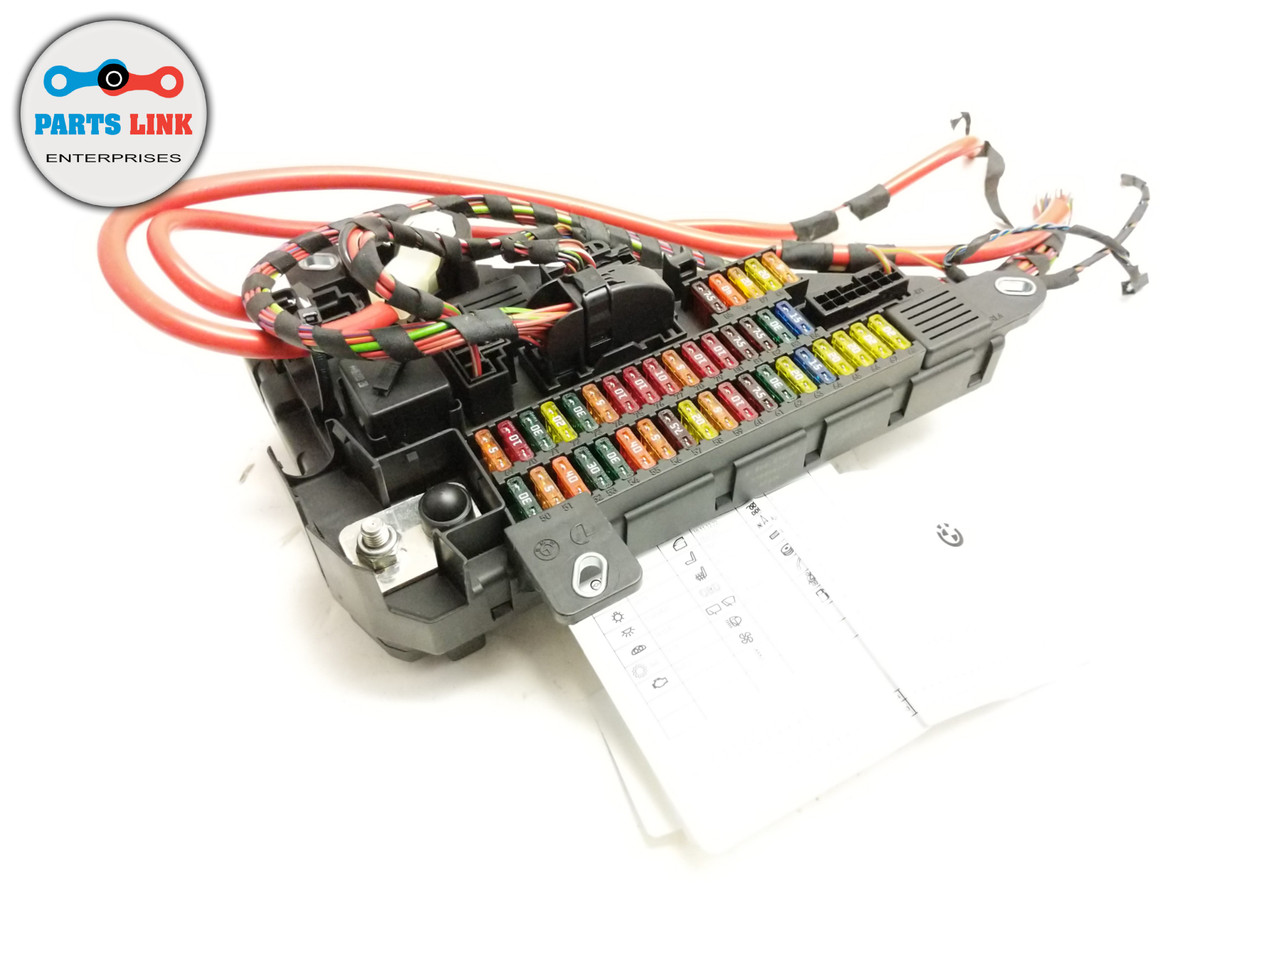 2006-2009 bmw m6 e63 rear trunk fuse box relay cable terminal m5 e60 650i  550i - parts link ent  parts link enterprise